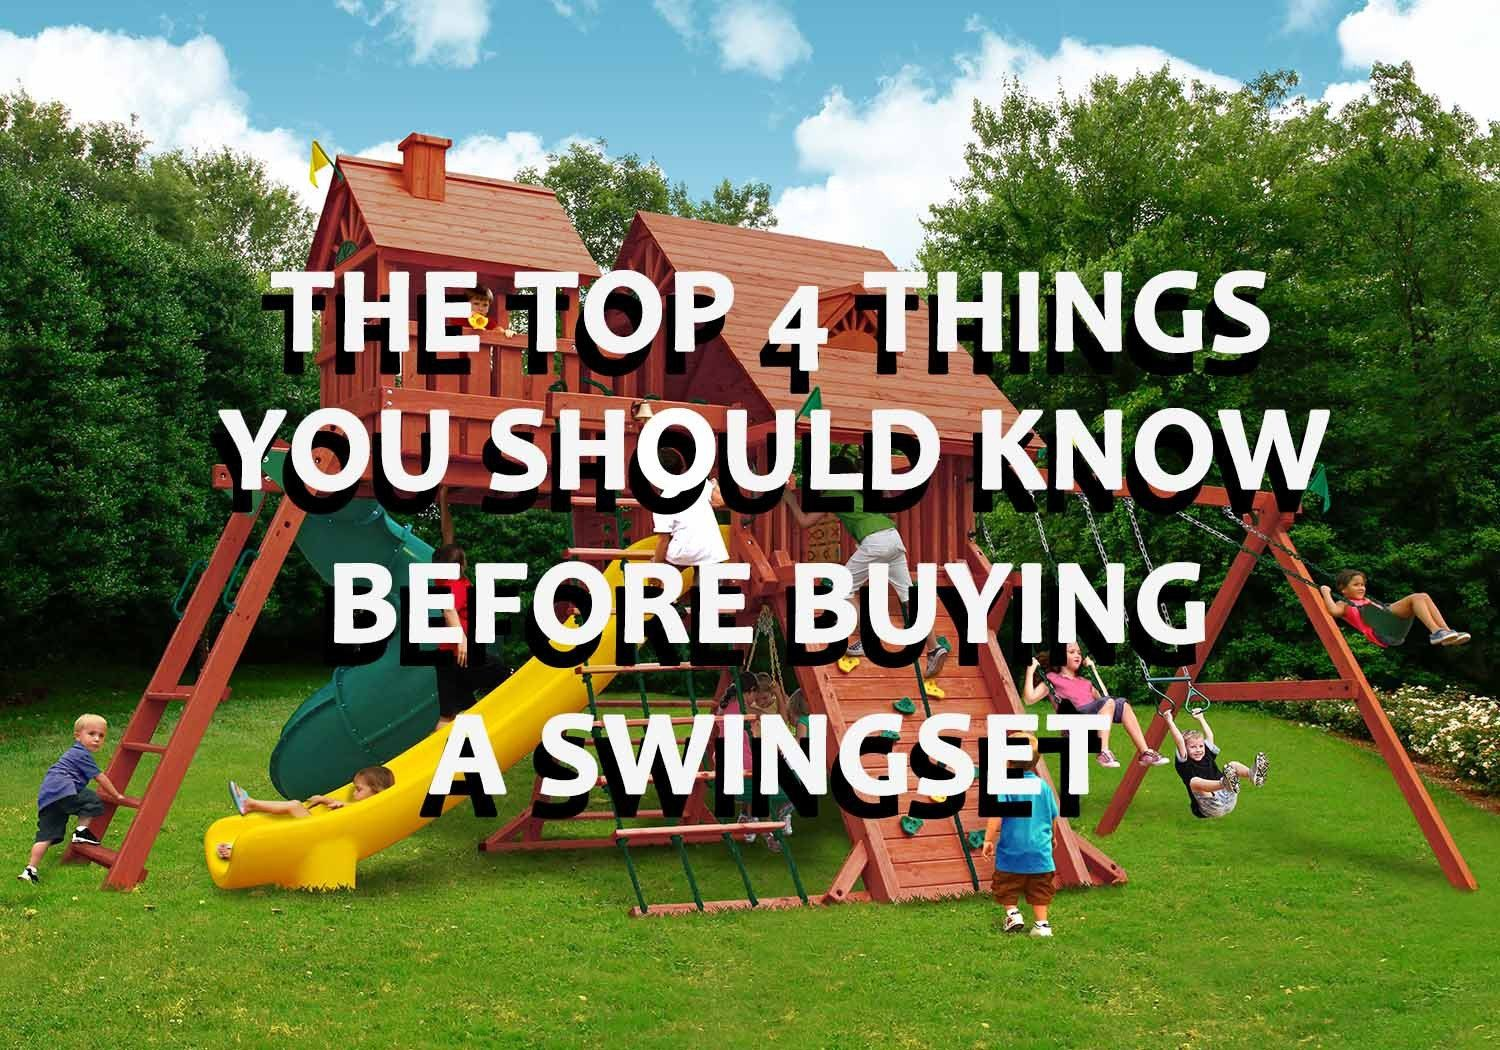 The top things you should know about a swing set before buying one